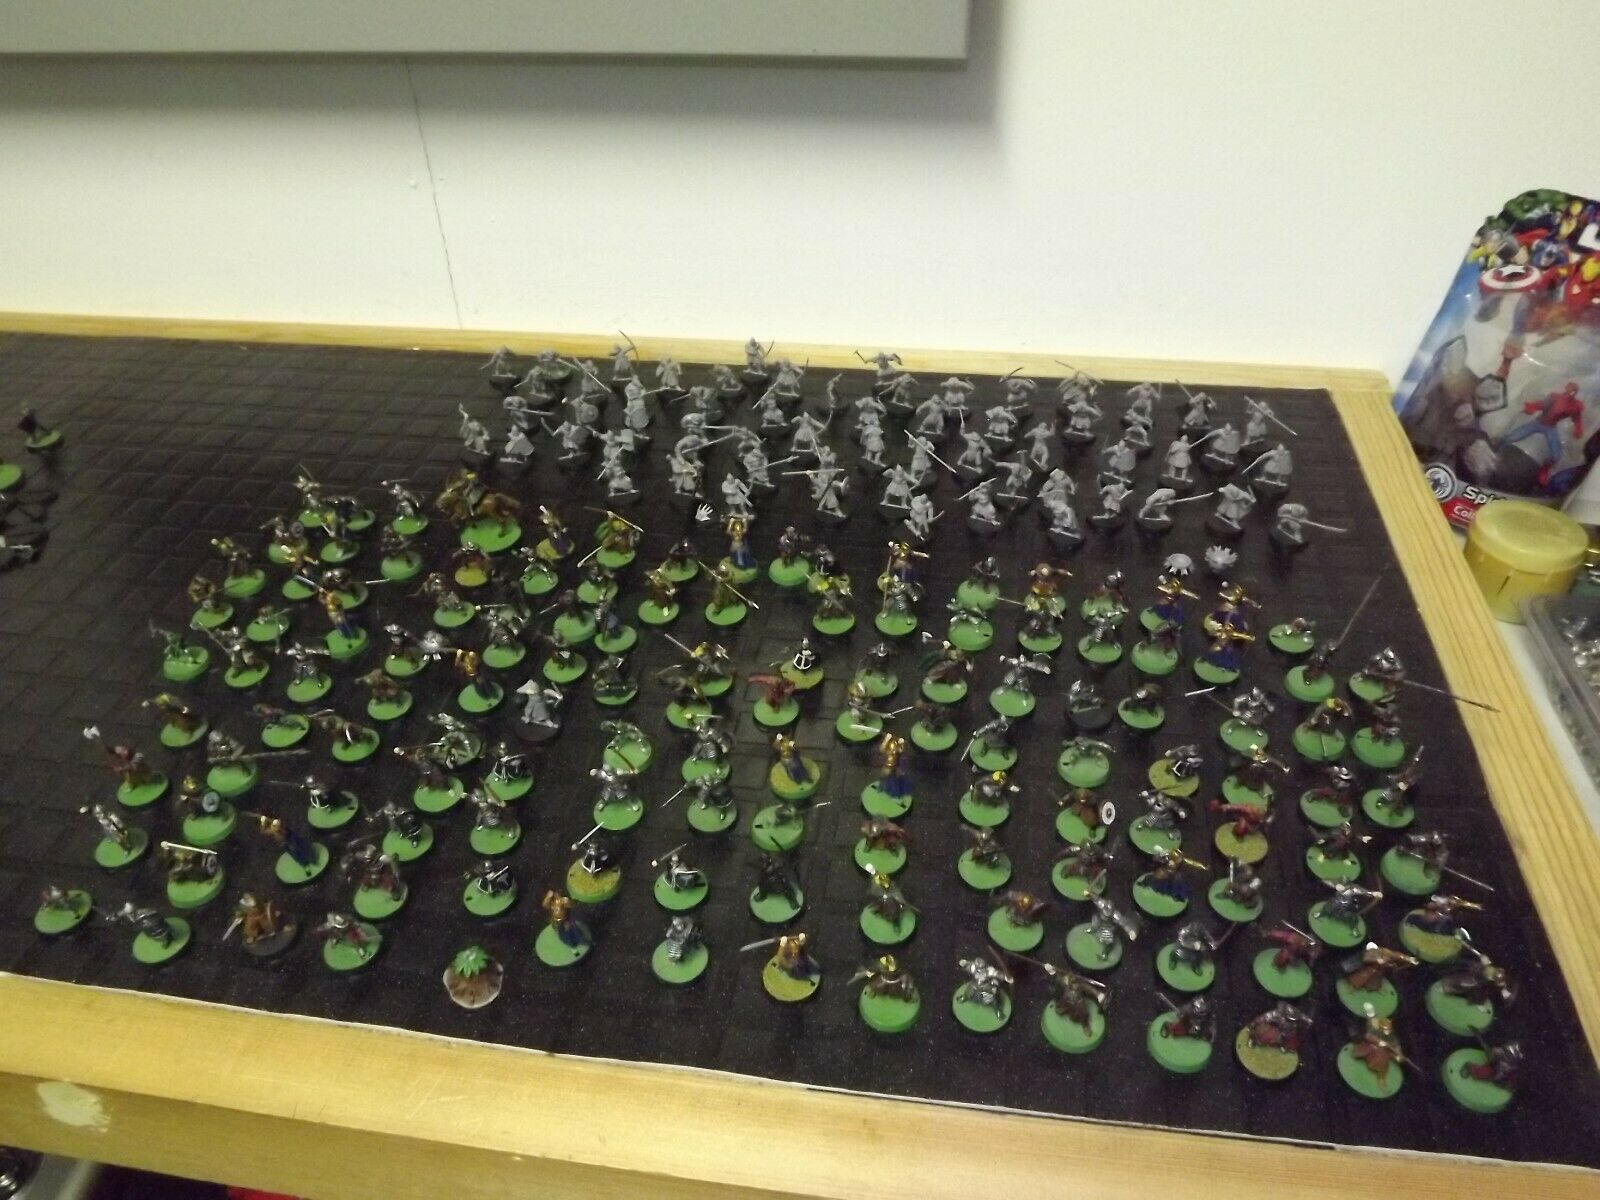 200 x Warhammer plastic Lord Lord Of The Rings  Figures  Painted    unpainted